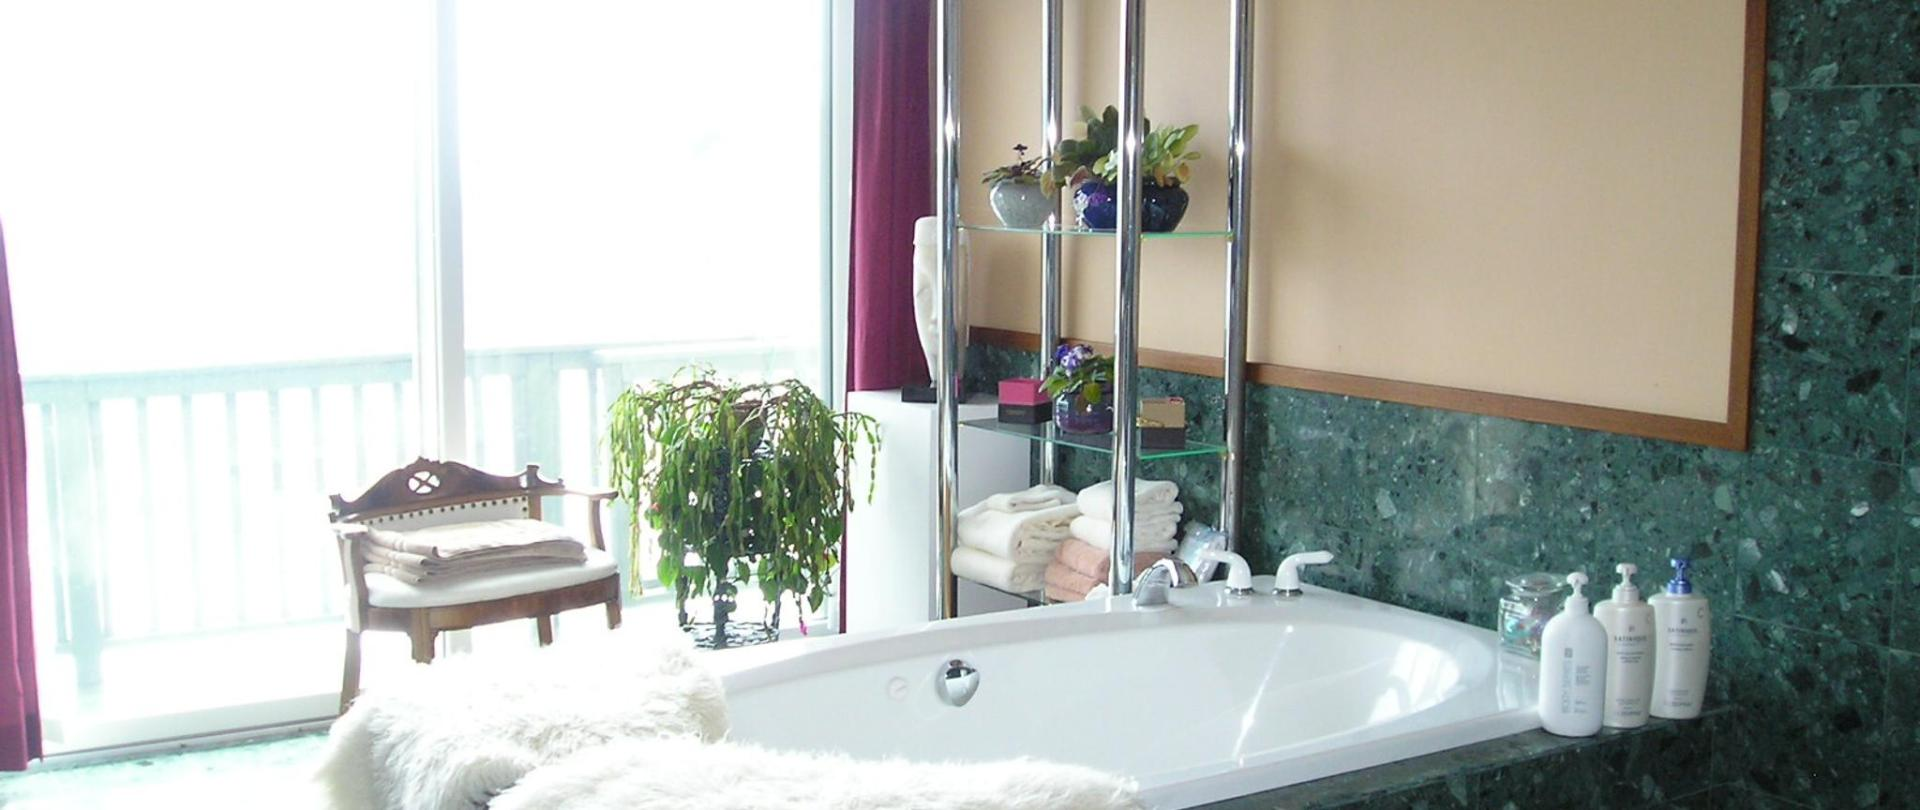 Coppertoppe room-Garnet suite bath w view .jpg